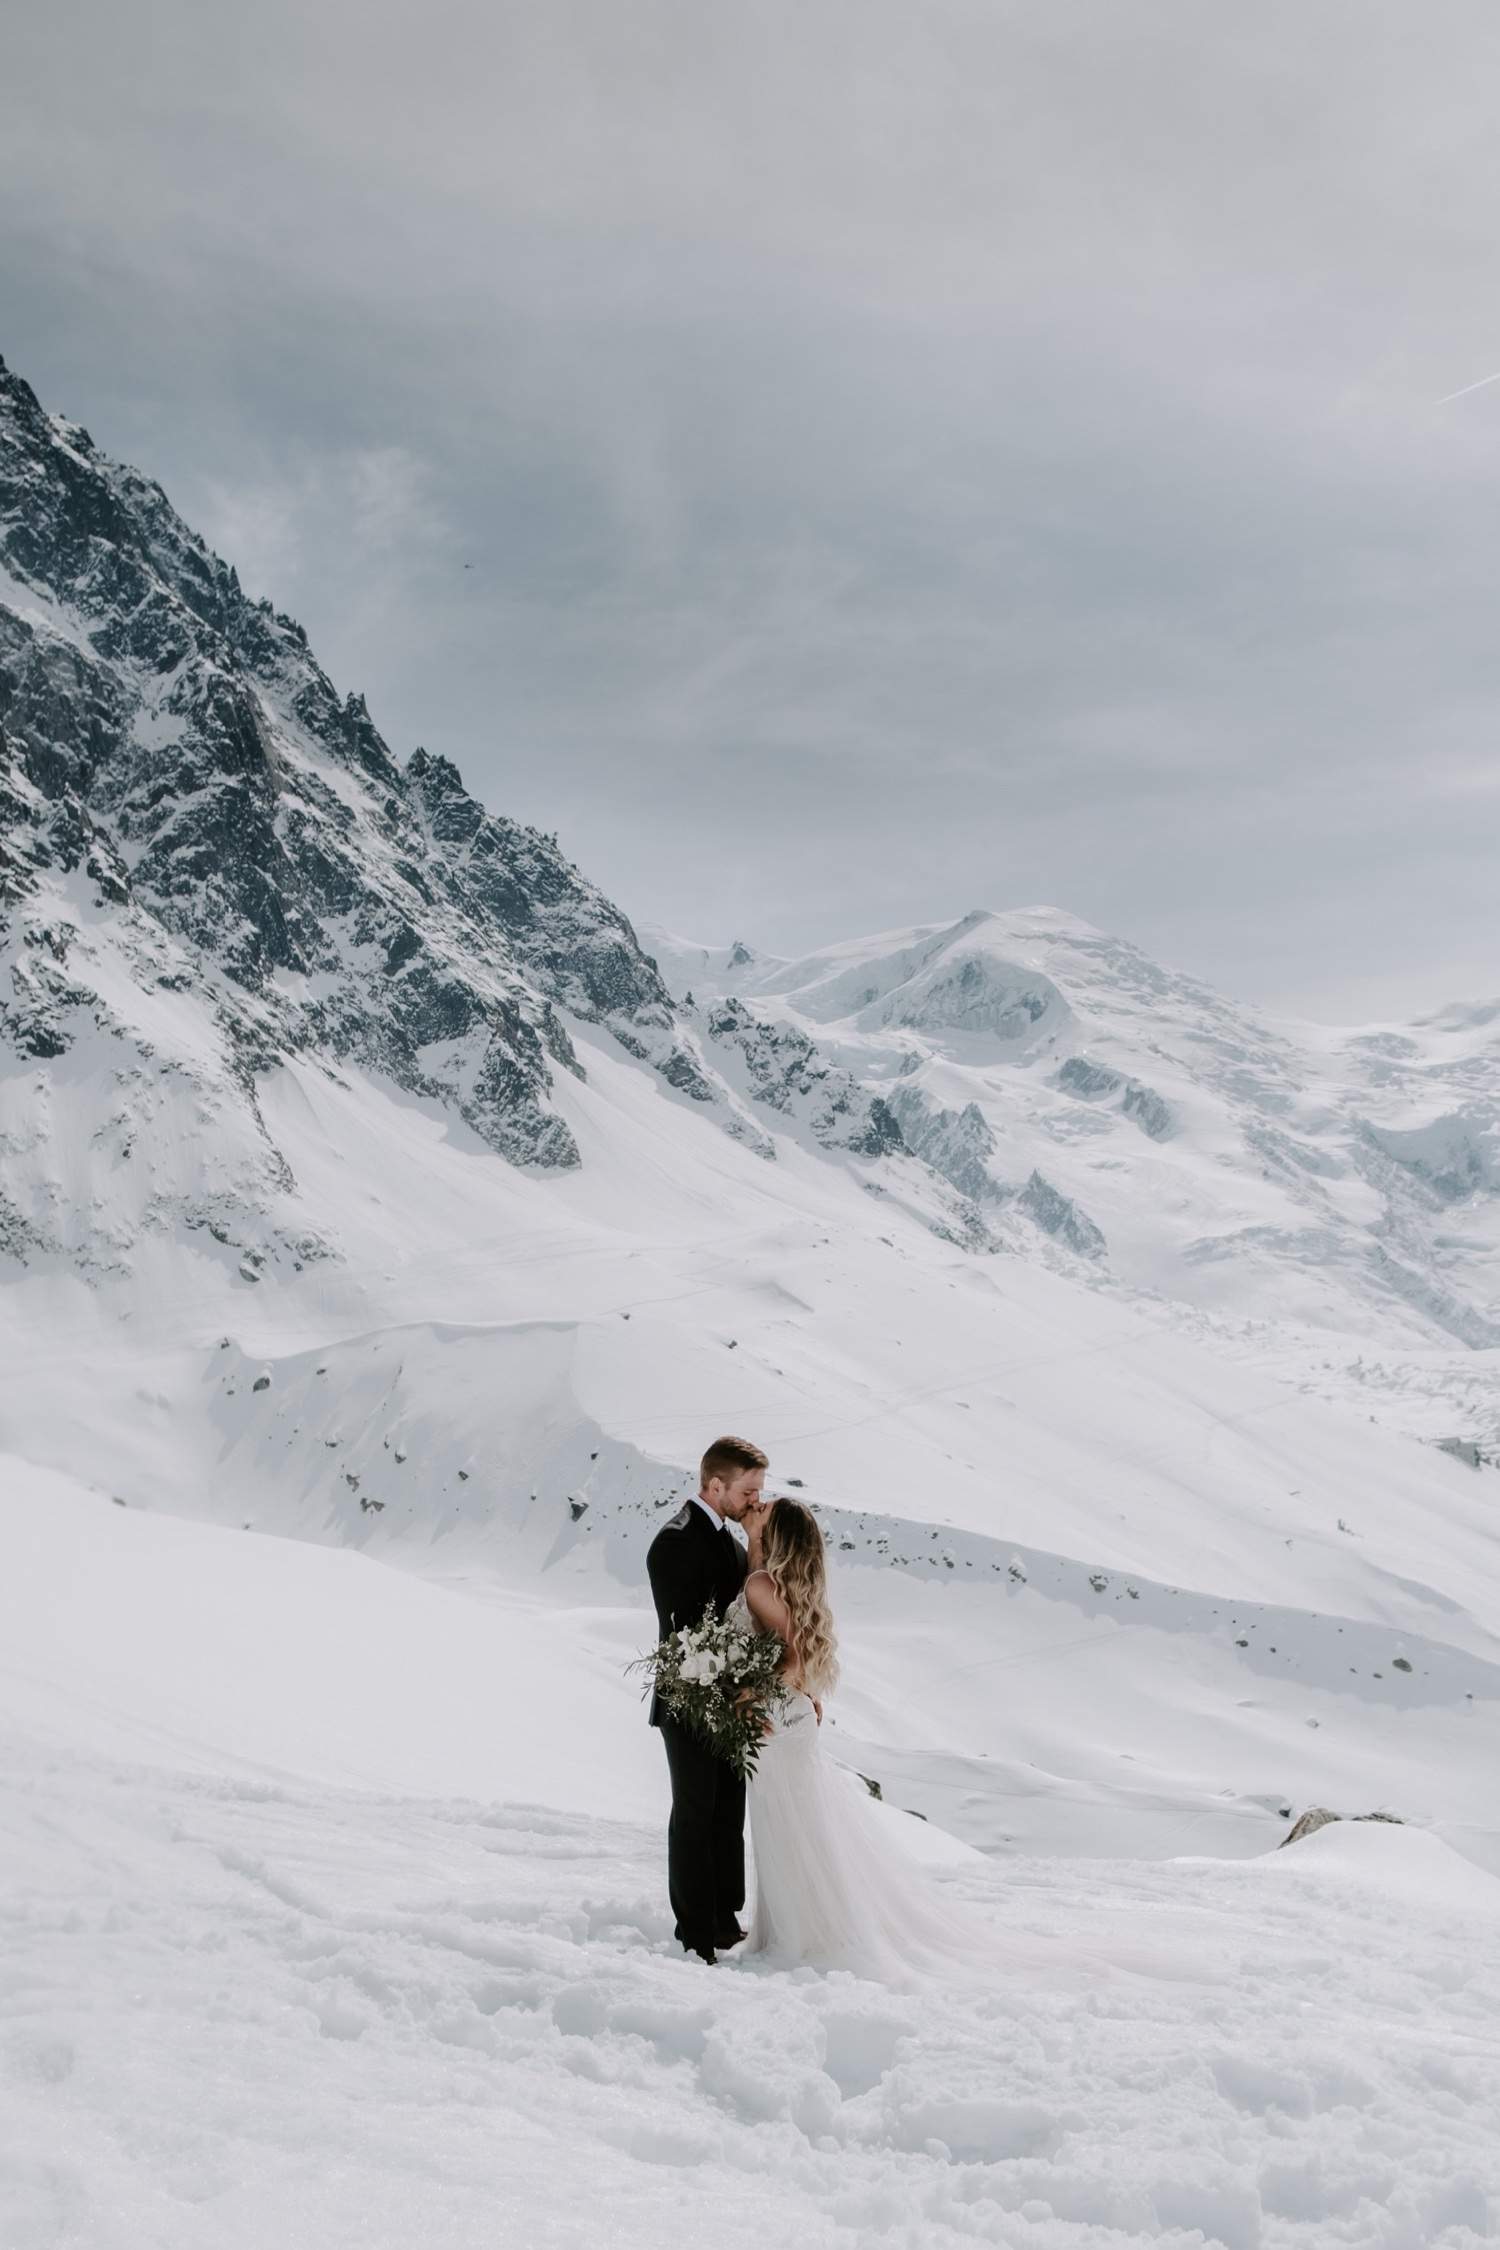 Chamonix-France-Elopement-Destination-Elopement-Photographer-20.jpg